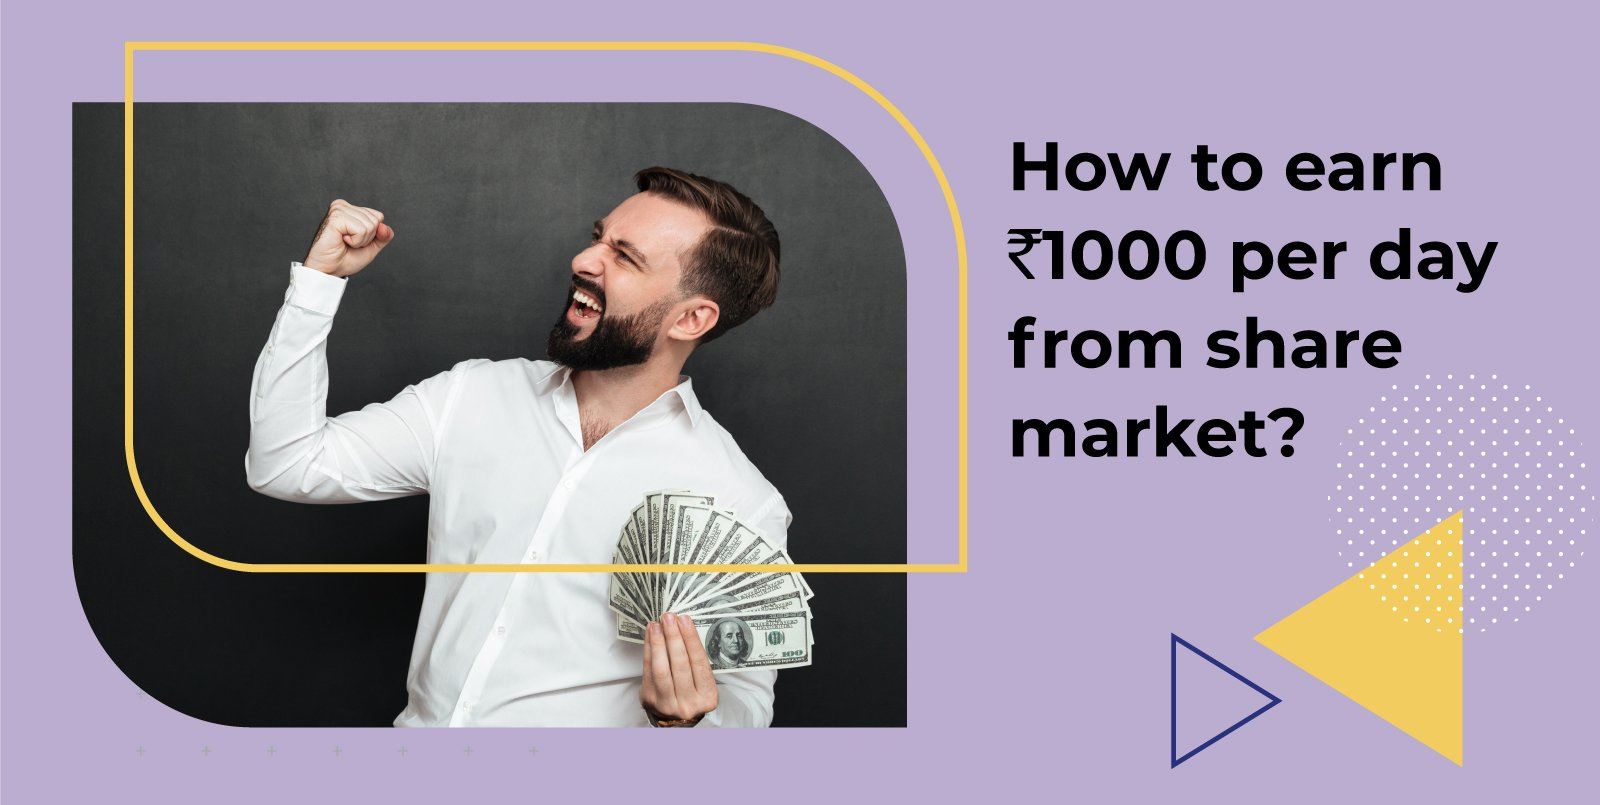 How to earn Rs.1000 per day from the share market